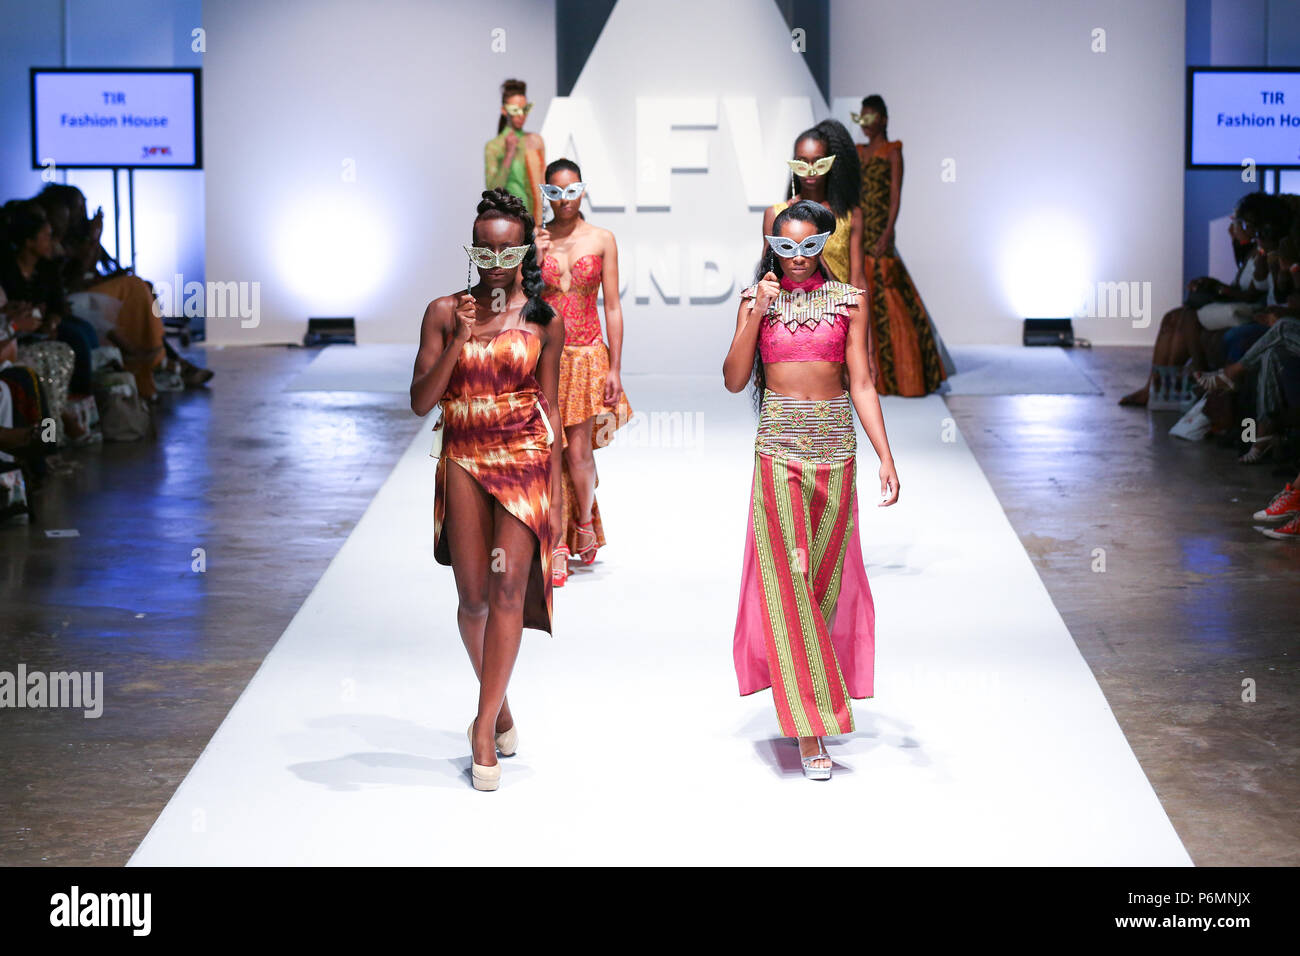 London, UK, August 2014, TIR Fashion House showcased their new collection at Africa Fashion Week London 2014. Mariusz Goslicki/Alamy - Stock Image